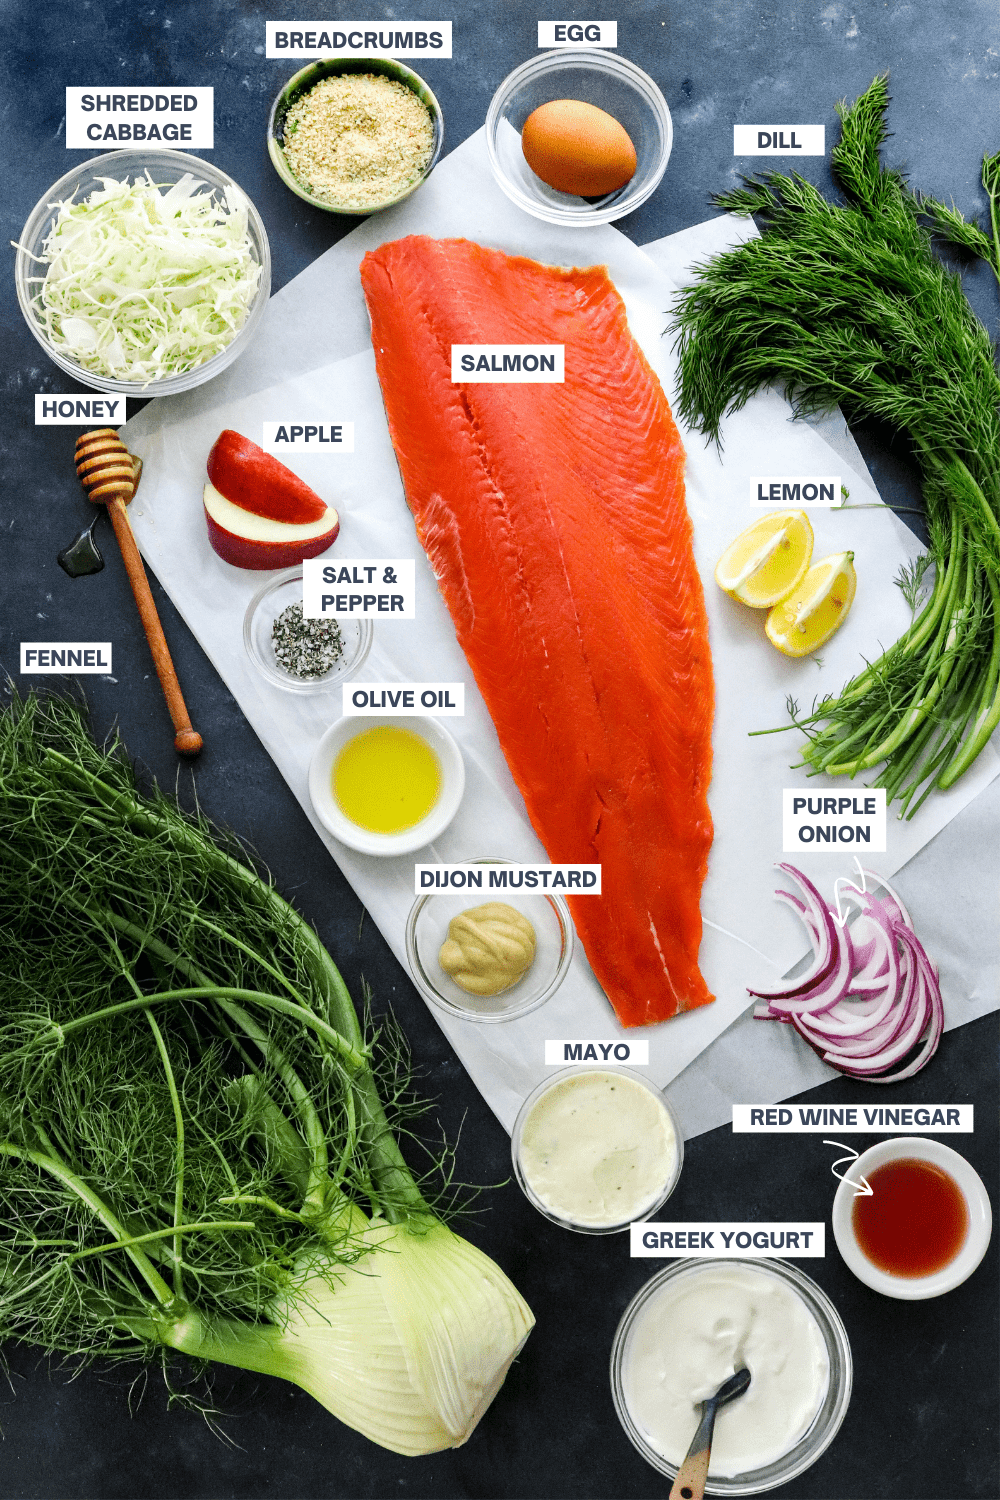 large piece of fresh salmon with dill, fennel bulb, cabbage, red onion around it with bowls filled with Greek yogurt, mustard, mayo, vinegar, salt and pepper near it.